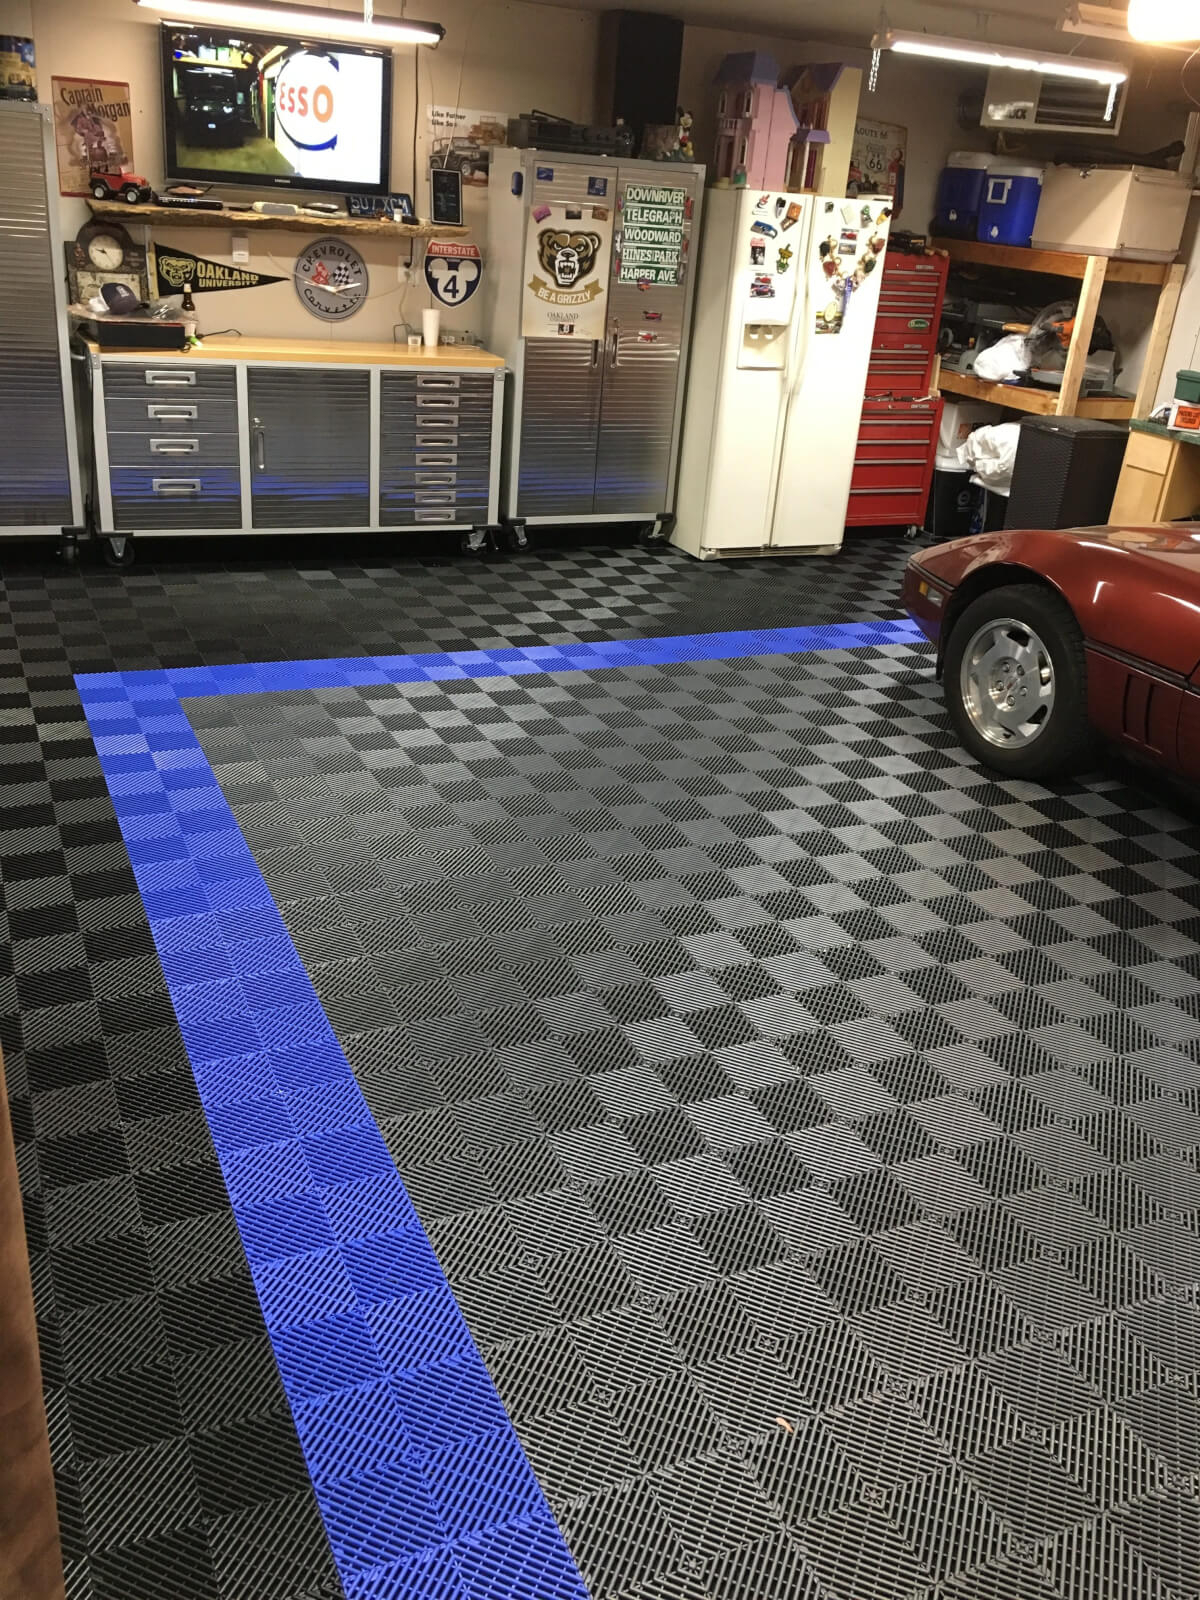 Before And After Racedeck Free Flow Brians Garage Tile pertaining to size 1200 X 1600